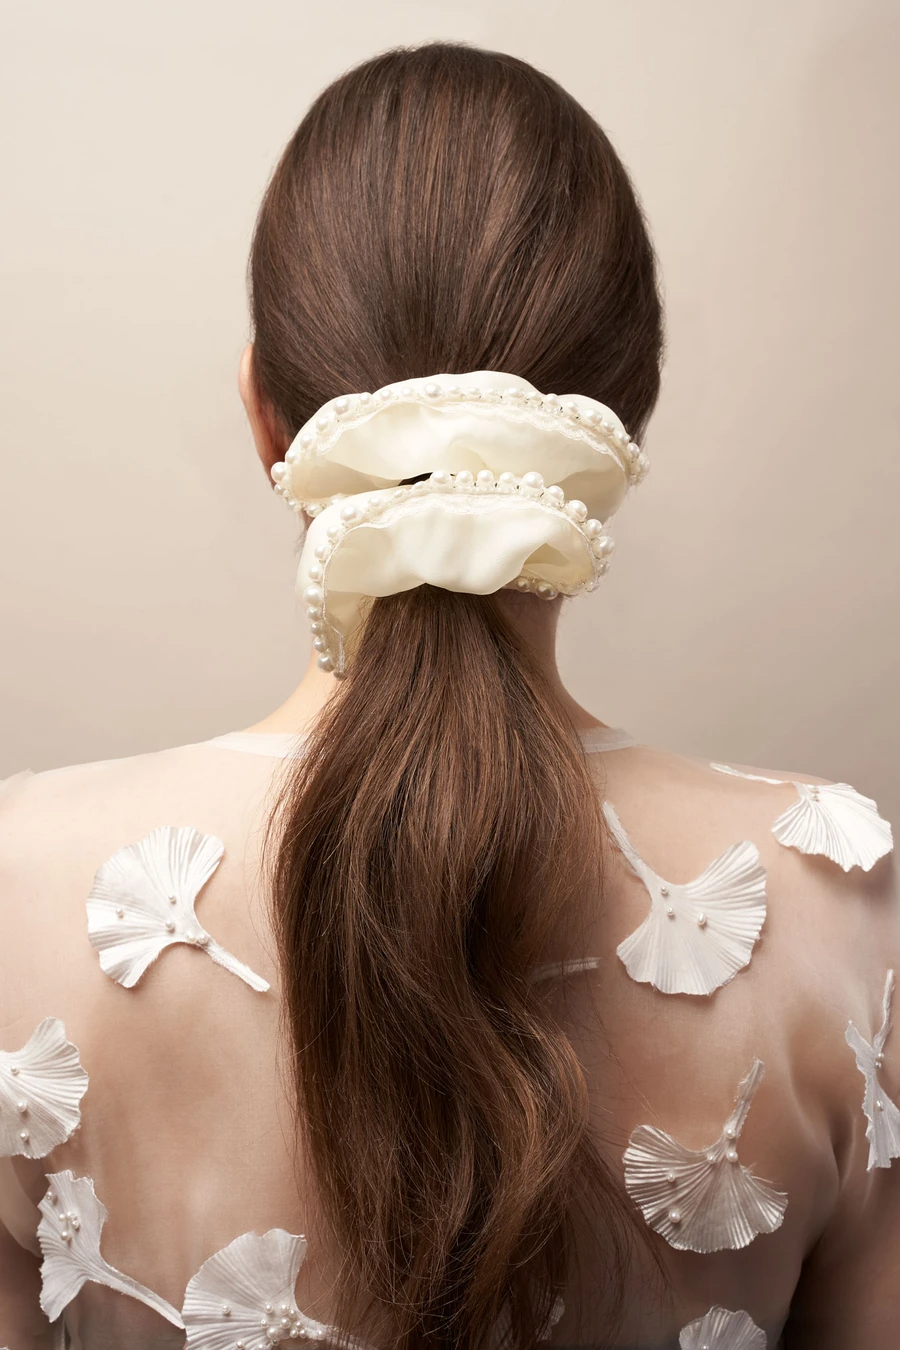 """<h3>MLE Ever After Scrunchie</h3><br>Have you seen a more holiday-appropriate hair accessory? MLE makes most of their pieces made to order in NYC. Their giftable goods range from this beautiful silk number to <a href=""""https://madebymle.com/collections/hair-clips/products/cloud-clip-cream"""" rel=""""nofollow noopener"""" target=""""_blank"""" data-ylk=""""slk:cloud claw clips"""" class=""""link rapid-noclick-resp"""">cloud claw clips</a>, <a href=""""https://madebymle.com/collections/gift-sets"""" rel=""""nofollow noopener"""" target=""""_blank"""" data-ylk=""""slk:gift sets"""" class=""""link rapid-noclick-resp"""">gift sets</a>, and even a thing or two for the <a href=""""https://madebymle.com/collections/dog-accessories"""" rel=""""nofollow noopener"""" target=""""_blank"""" data-ylk=""""slk:pup"""" class=""""link rapid-noclick-resp"""">pup</a> in your life. <br><br><strong>MLE</strong> Ever After Scrunchie, $, available at <a href=""""https://go.skimresources.com/?id=30283X879131&url=https%3A%2F%2Fmadebymle.com%2Fcollections%2Fhair-accessories%2Fproducts%2Fever-after-scrunchie"""" rel=""""nofollow noopener"""" target=""""_blank"""" data-ylk=""""slk:MLE"""" class=""""link rapid-noclick-resp"""">MLE</a>"""